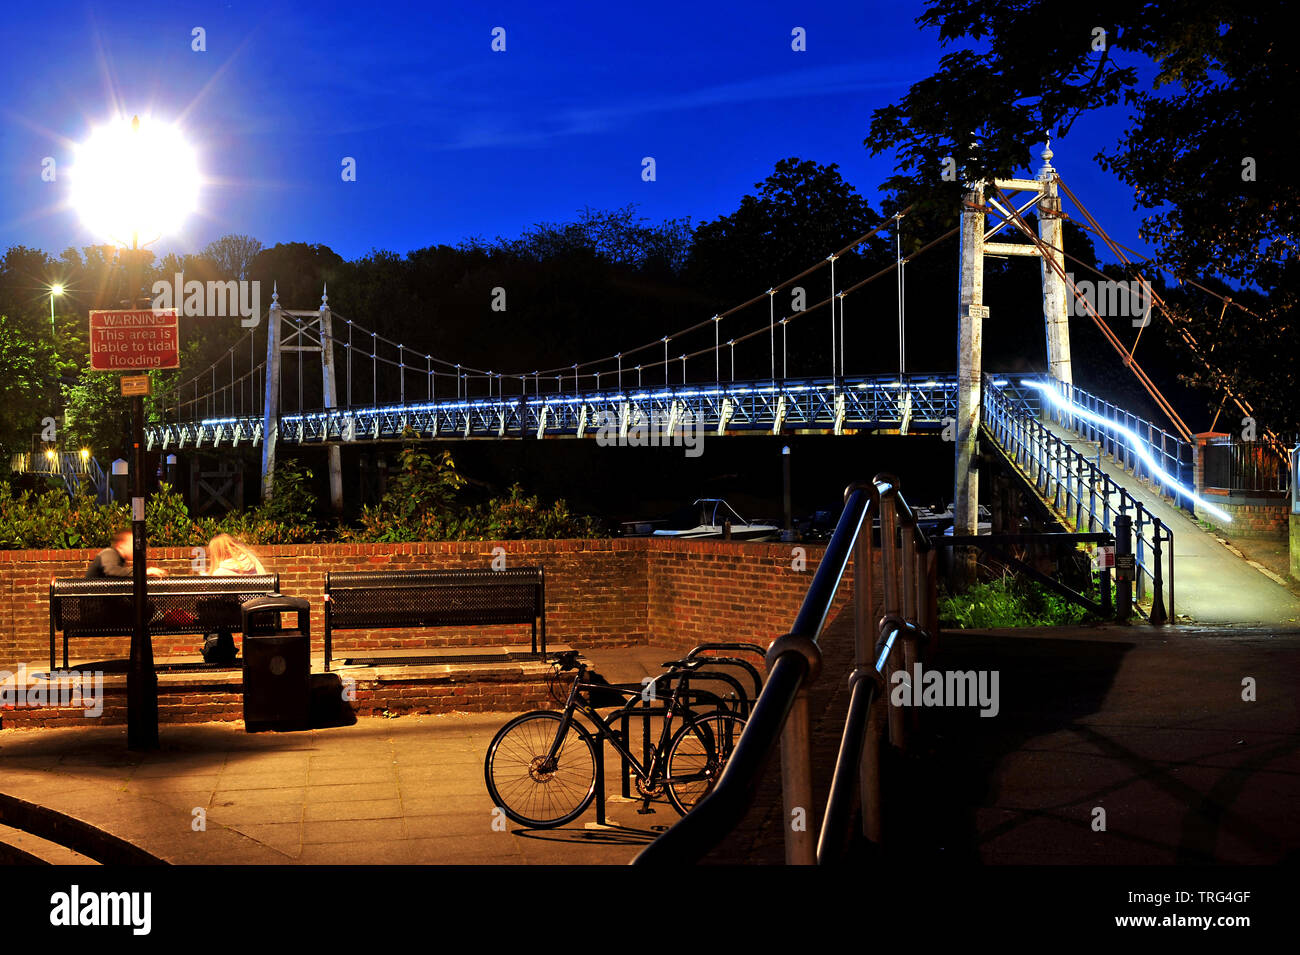 The suspension bridge over Teddington Lock allowing pedestrians to cross the river Thames from Ham to Teddington, Middlesex. Photographed at night - Stock Image